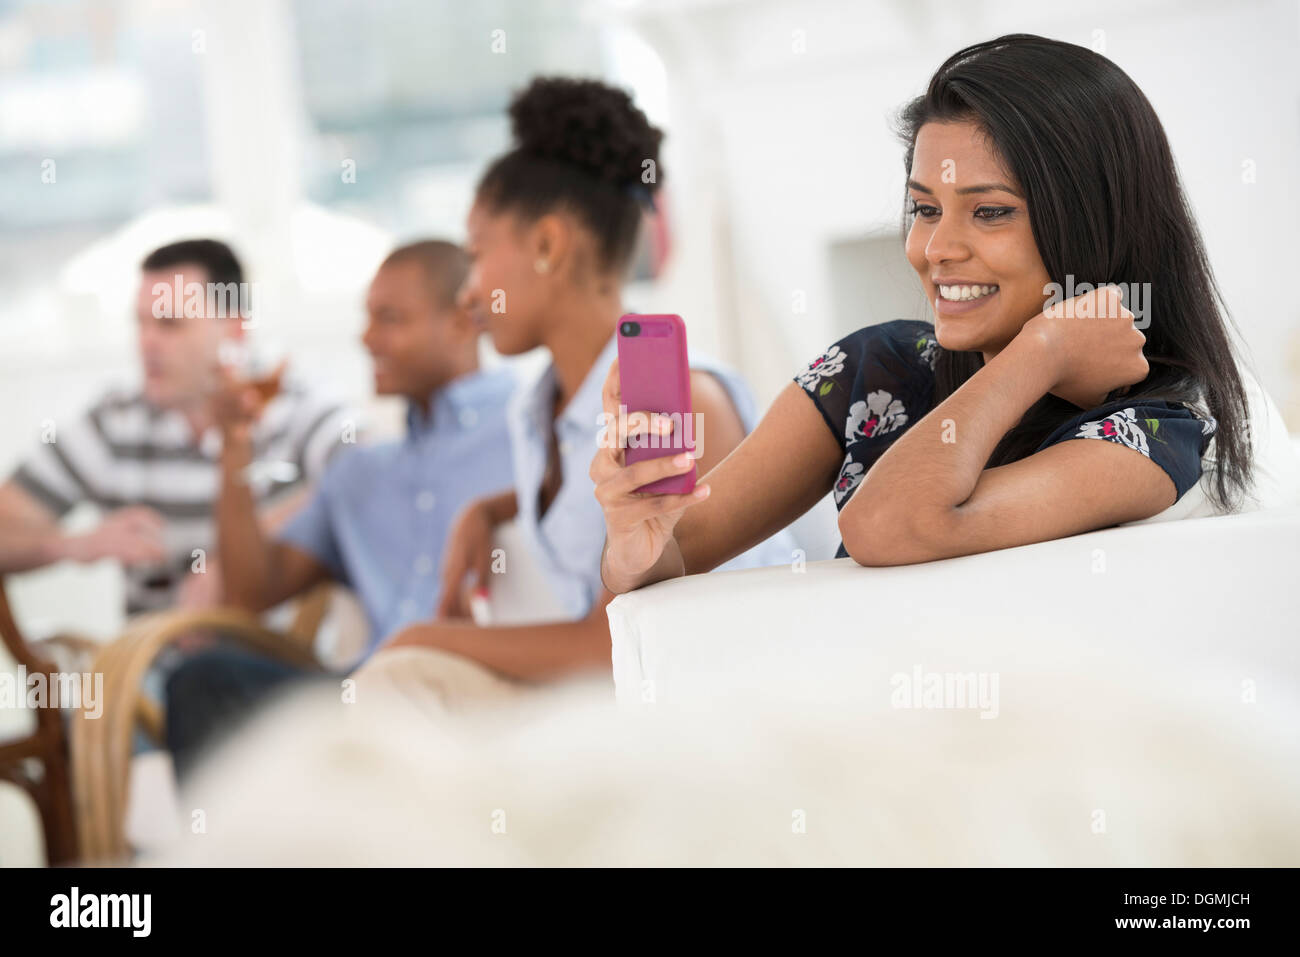 Office event. A woman using her pink smart phone. - Stock Image